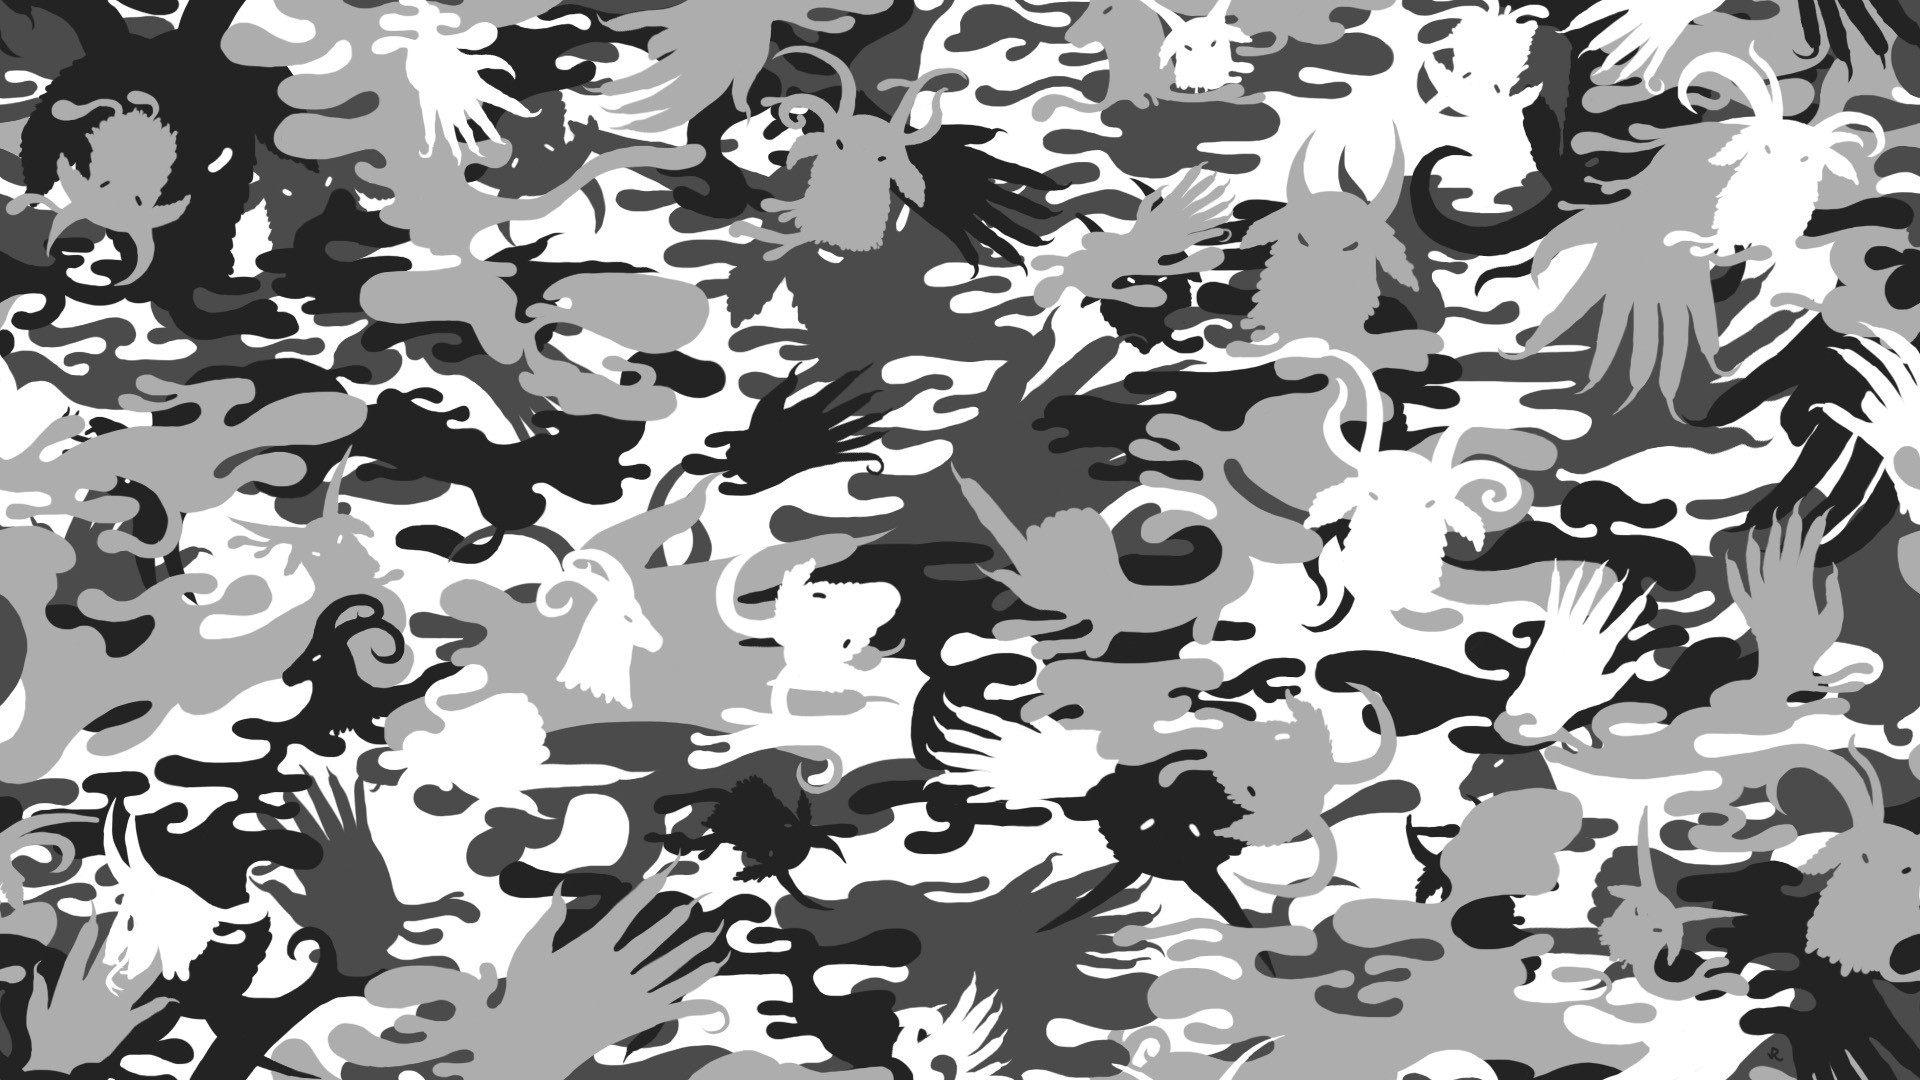 1920x1080 The Army Russia Camouflage Twilight Woodland Digital Camo By Andrew Marley